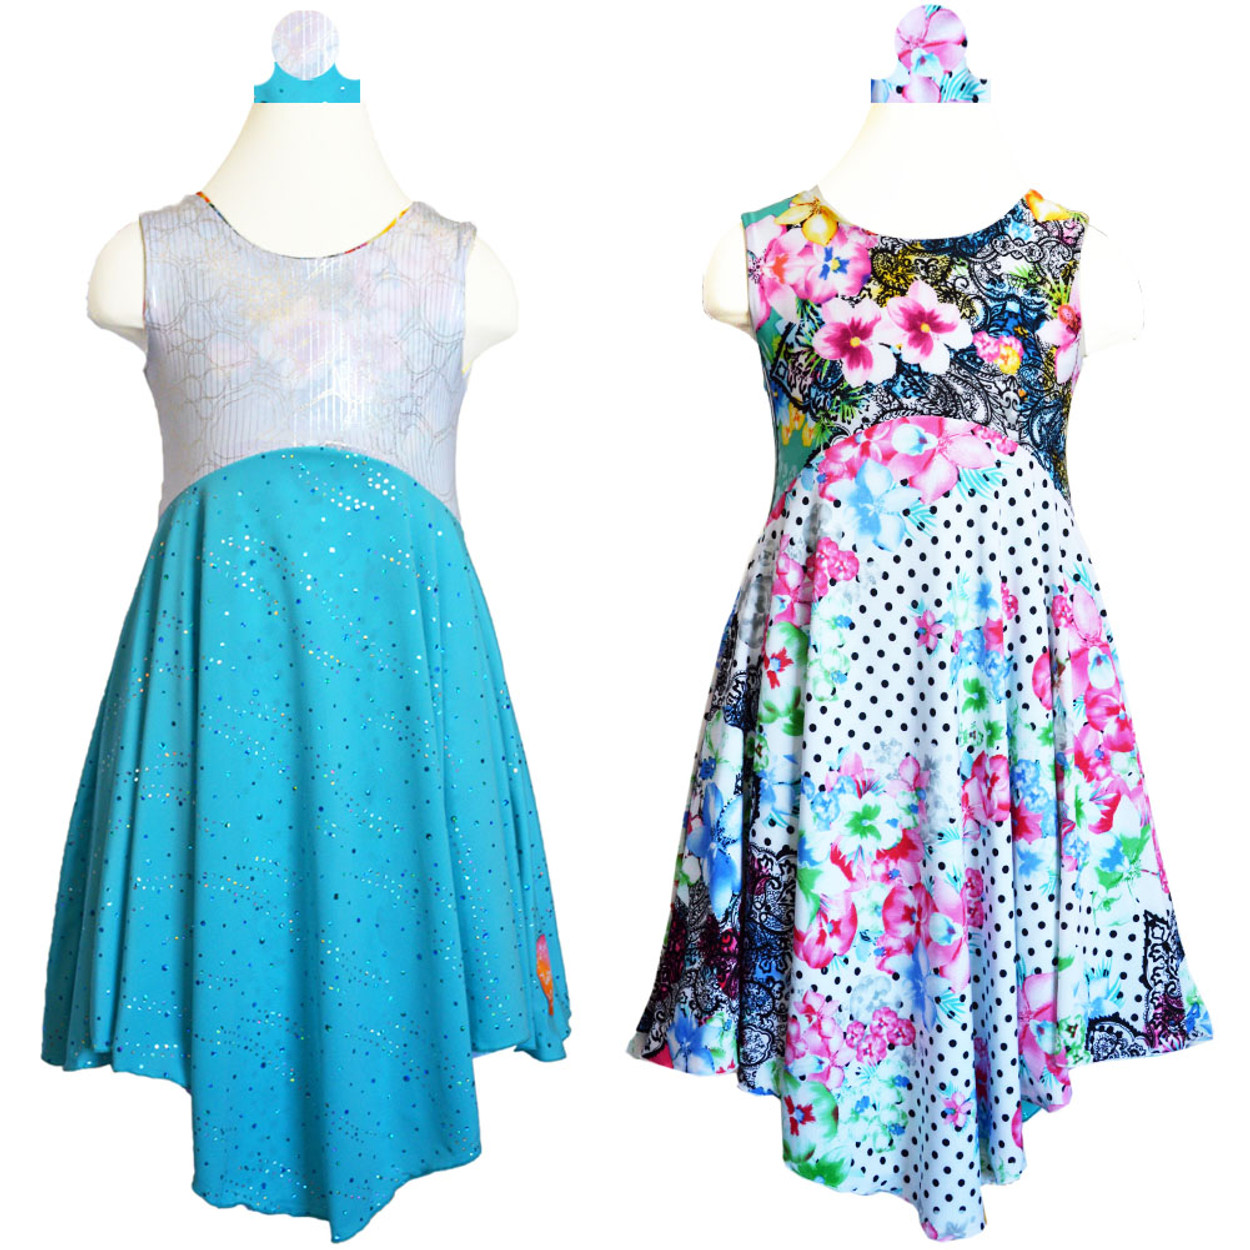 d764d05403e6 Twirly Girl Girls Summer Dress Reversible Sparkly Pretty Turquoise & Polka  Dots